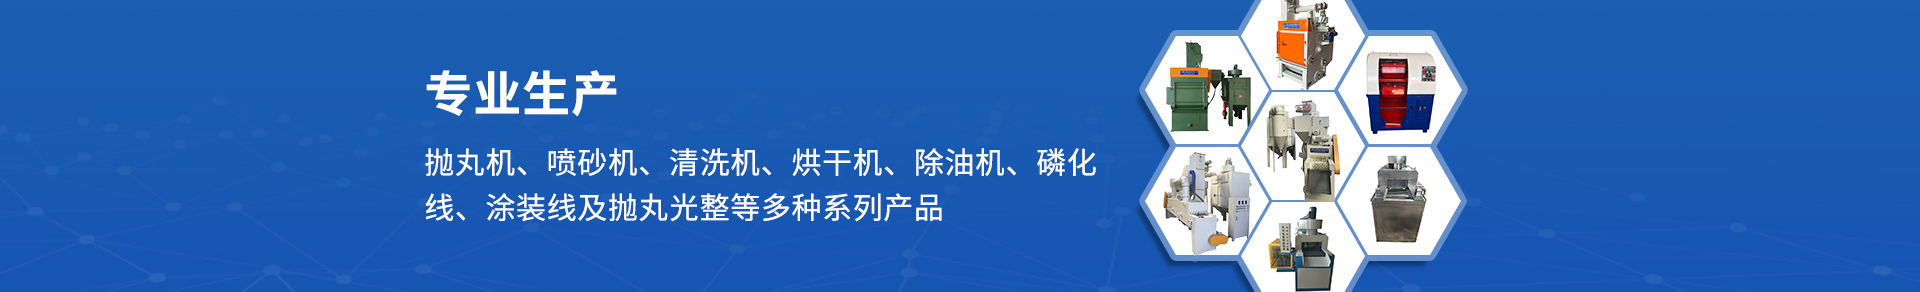 http://www.jiuwangjixie.cn/data/images/slide/20190712151652_623.jpg